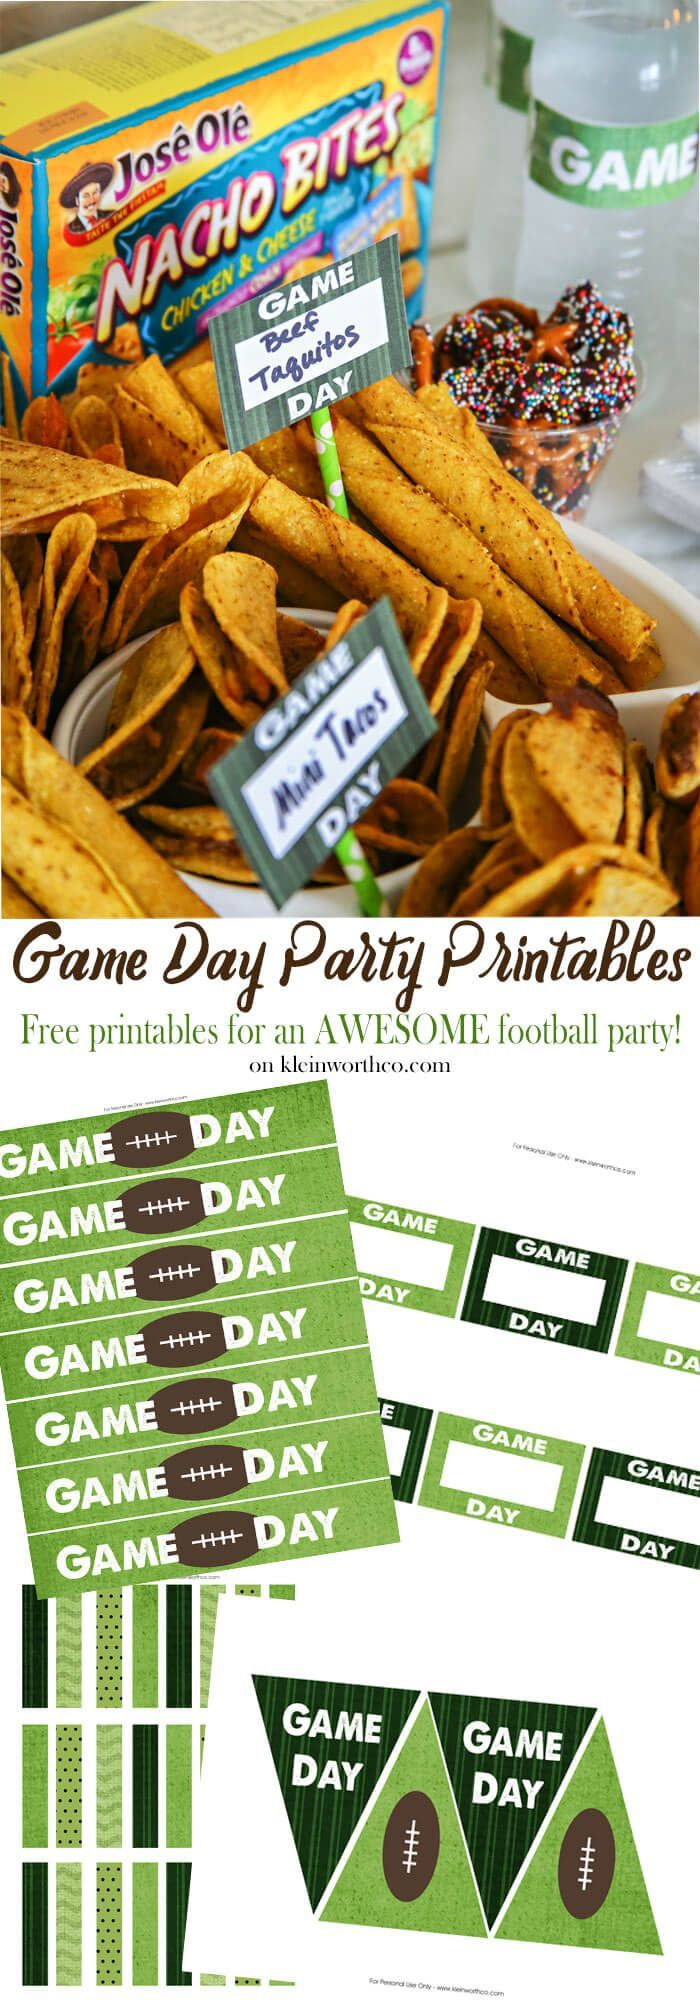 Game Day Party Printables to decorate your party table! Perfect for die-hard football fans - Just cut, tape & enjoy! AD #JustSayOle @joseolecentral